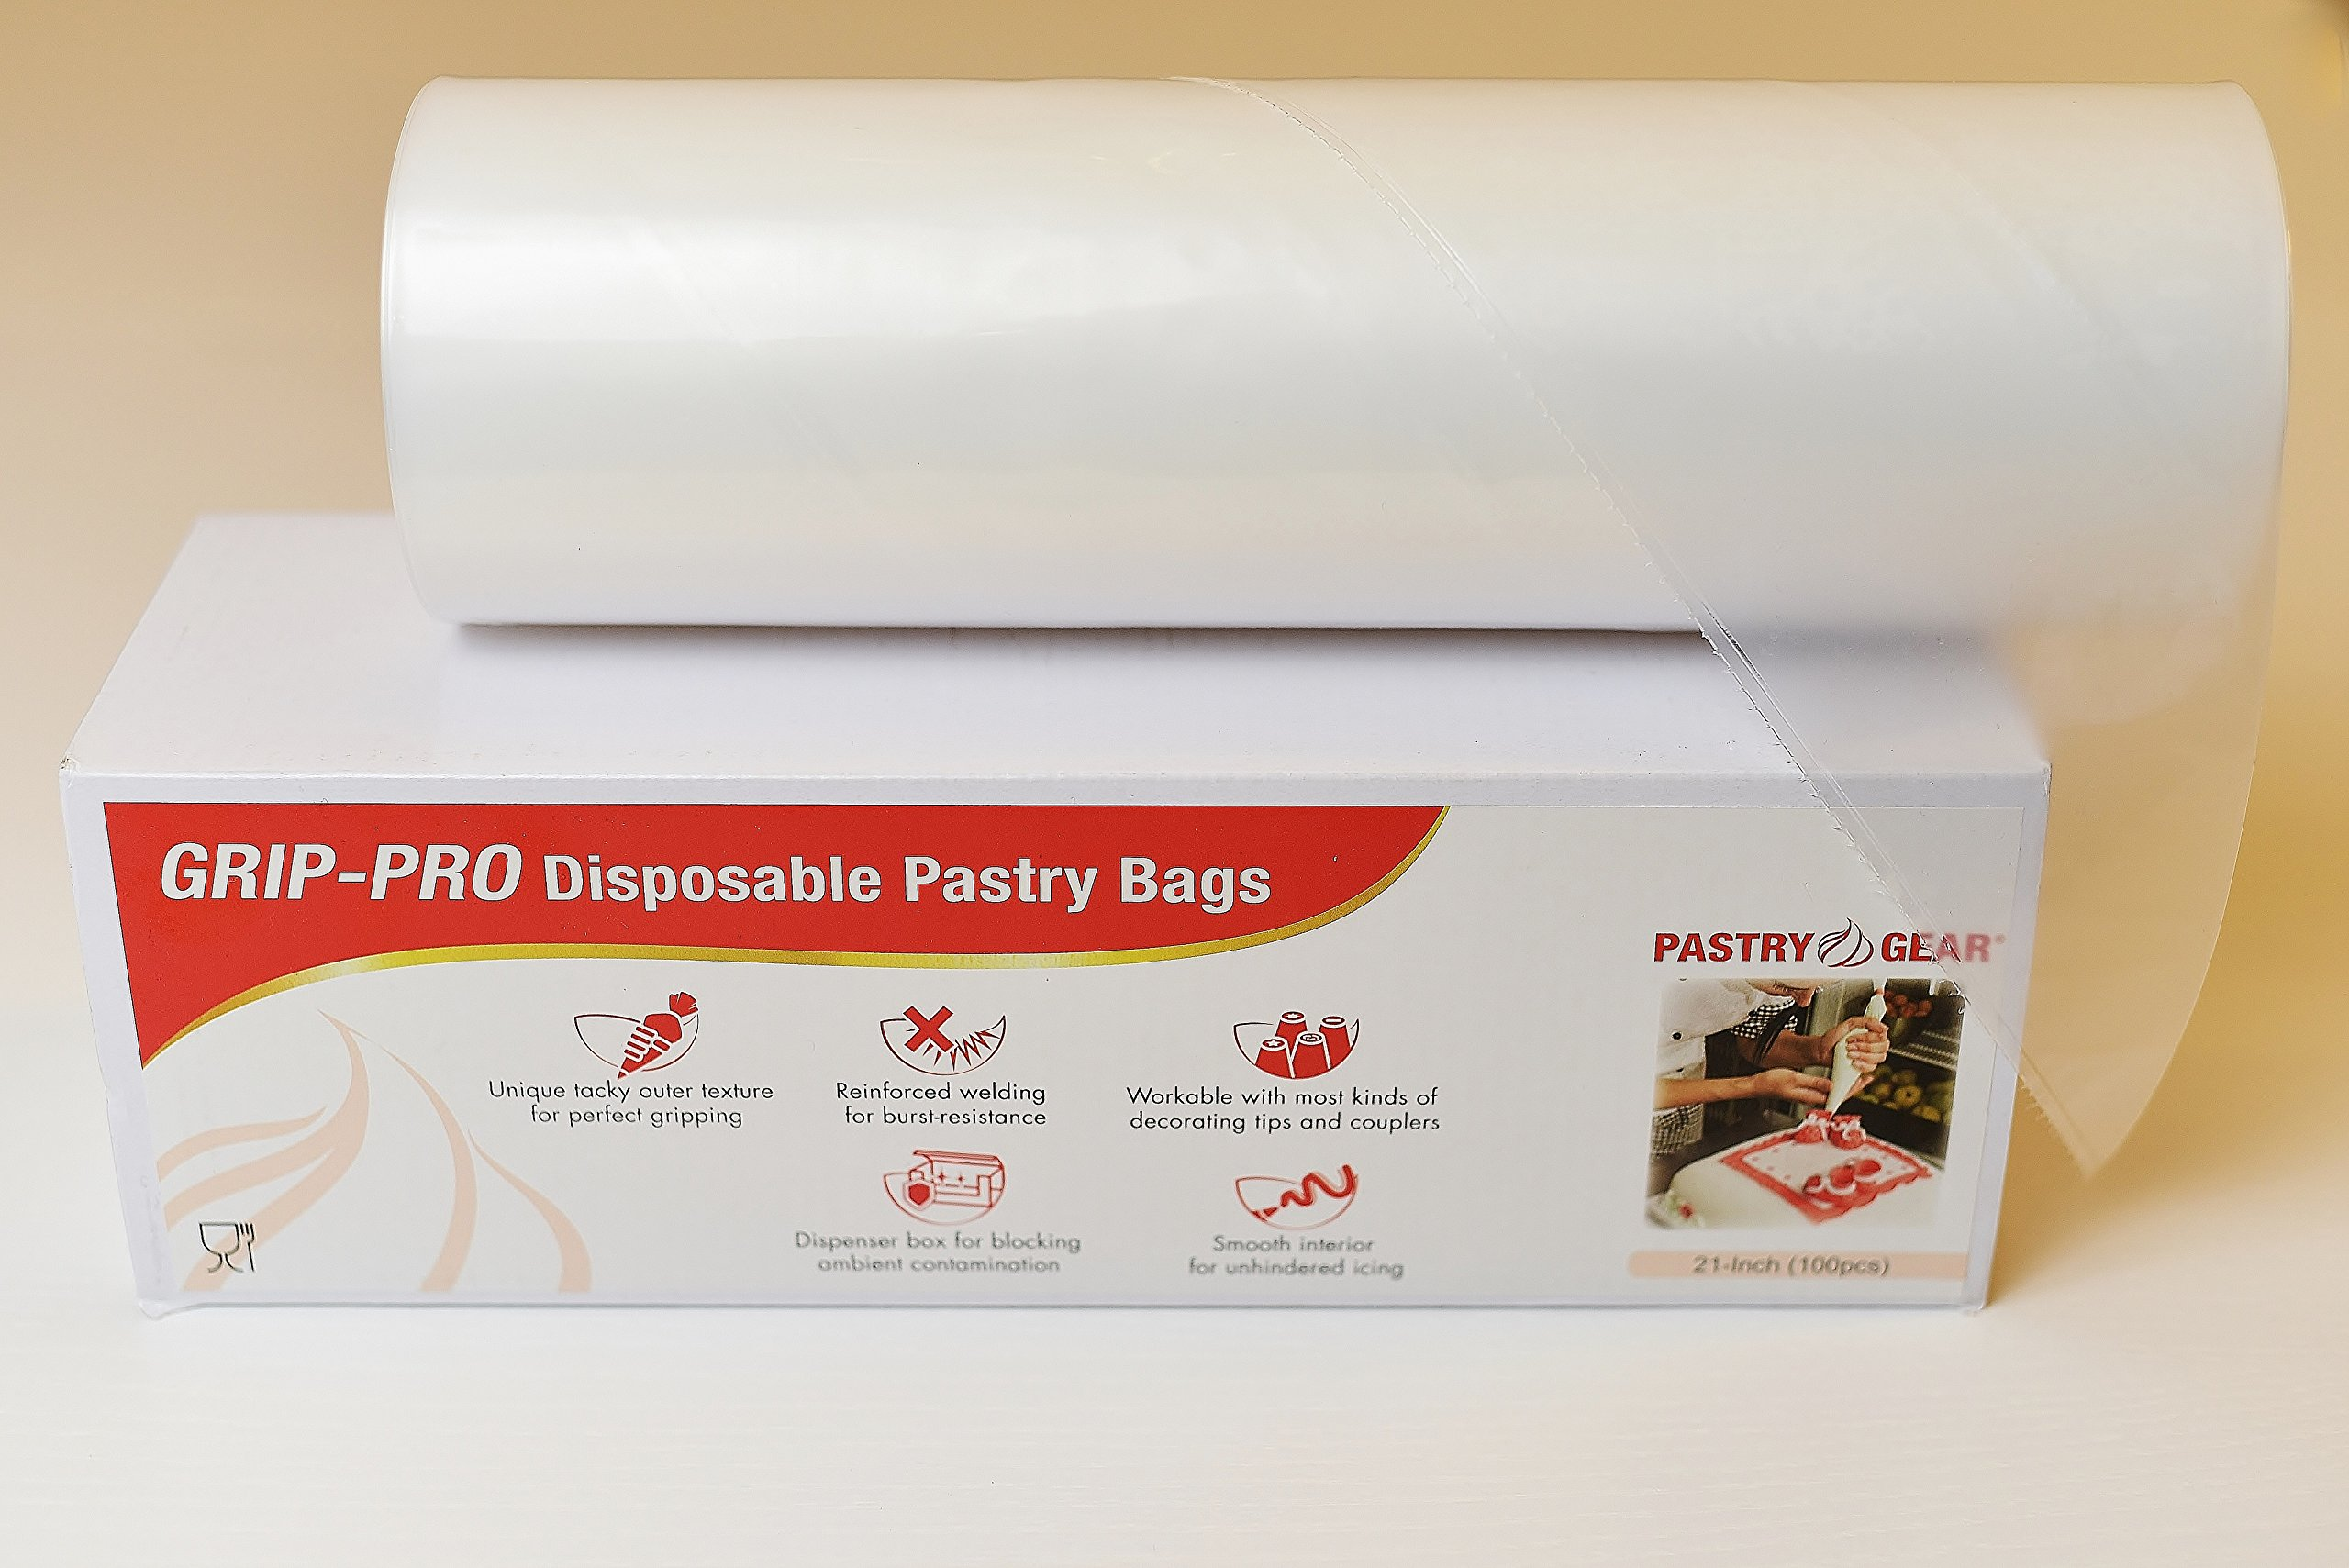 PastryGear Grip-Pro 21-Inch Anti-slip Ultra Thick Disposable Pastry / Piping Bags with Dispenser (Roll of 100 Pcs)